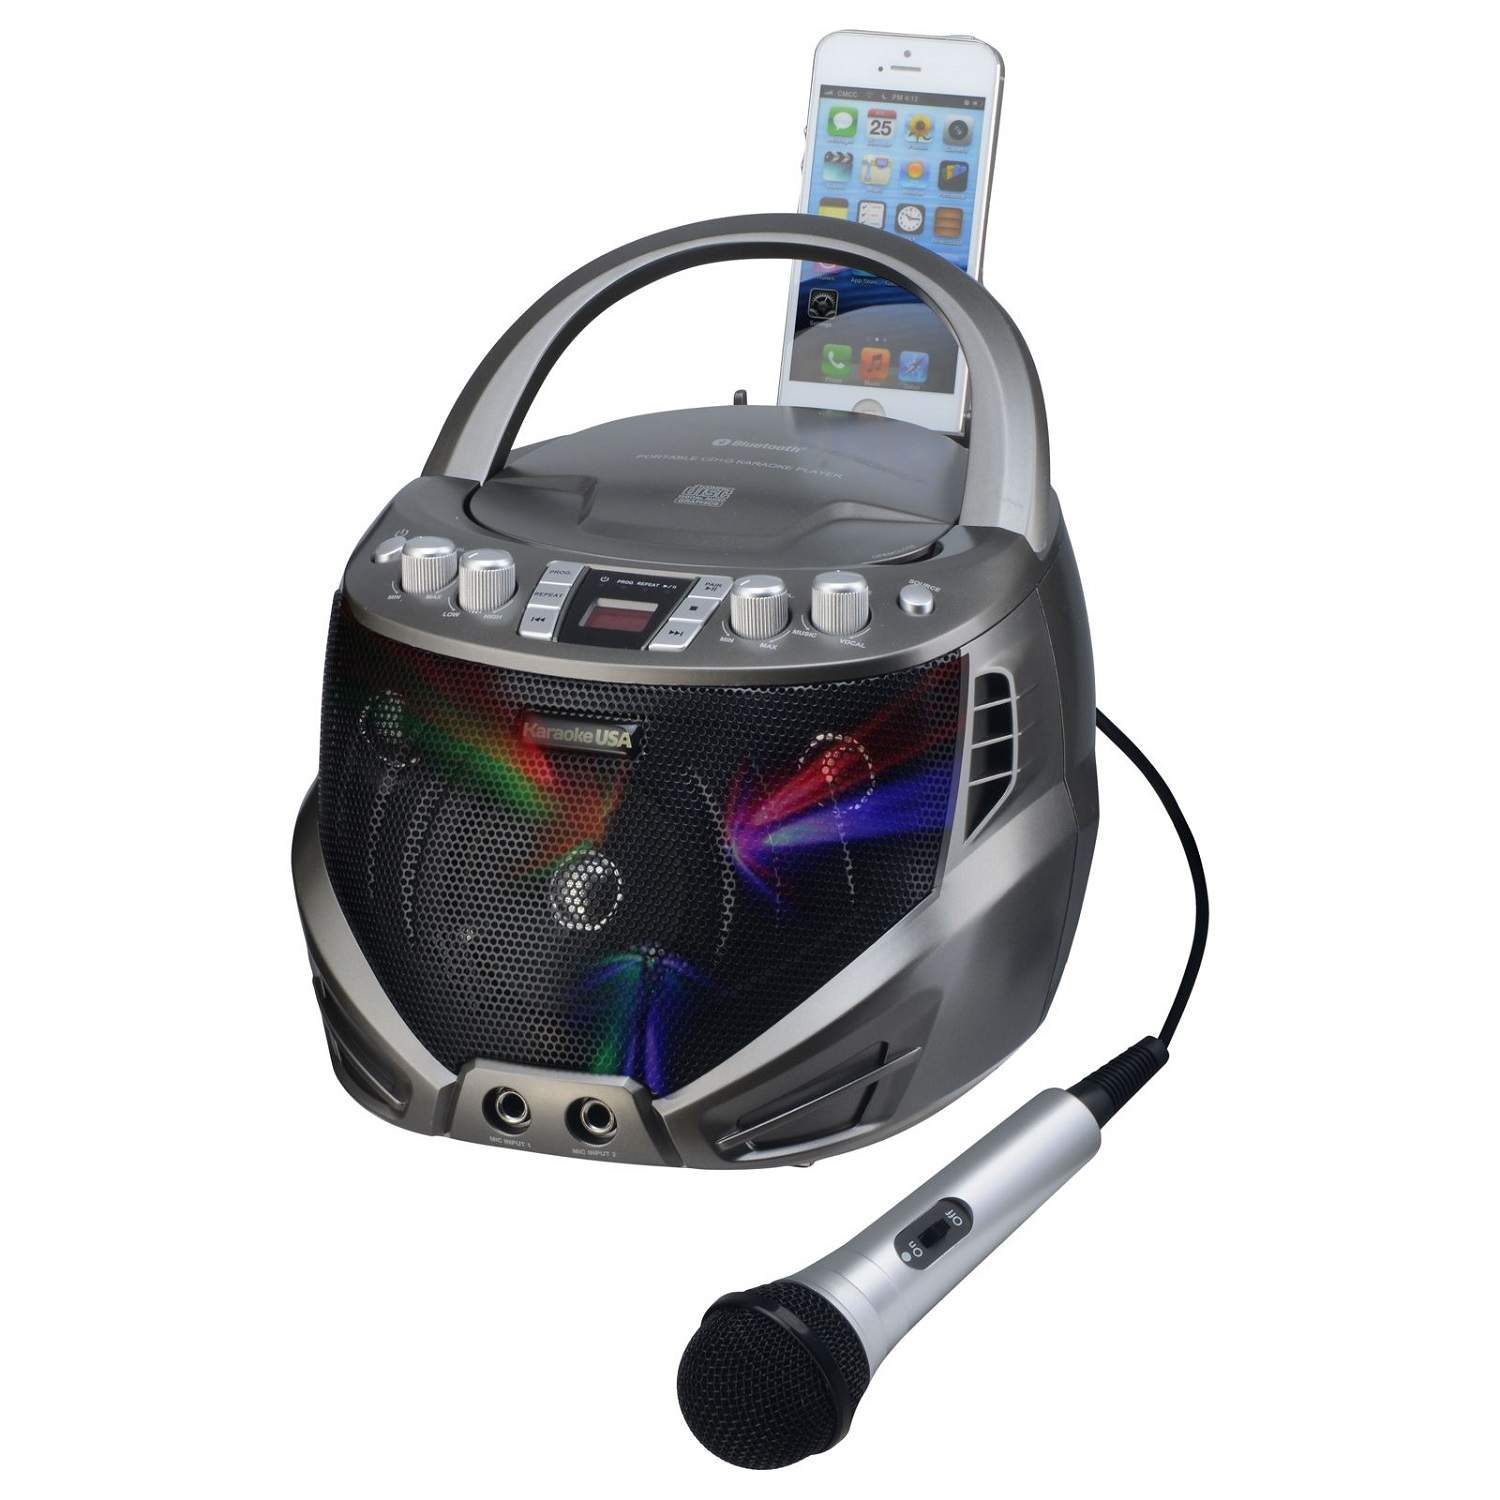 DOK GQ263 Portable Karaoke Machine with CD Player & Flashing LED Lights by DOK Solutions